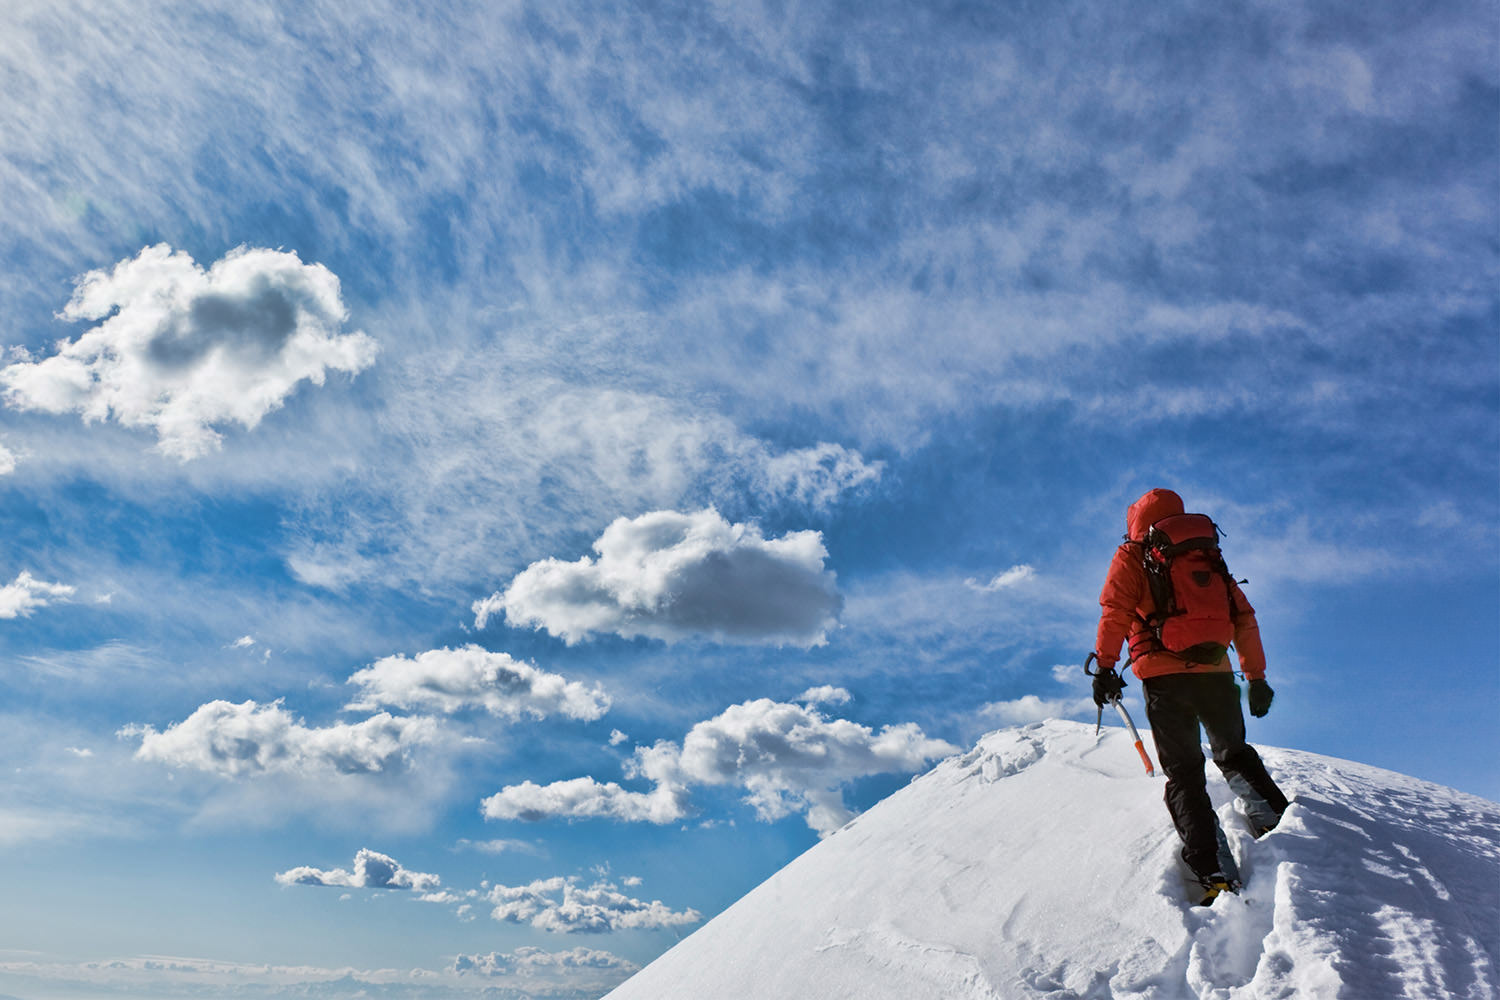 High Alpine terrain with long and varied ski descents.